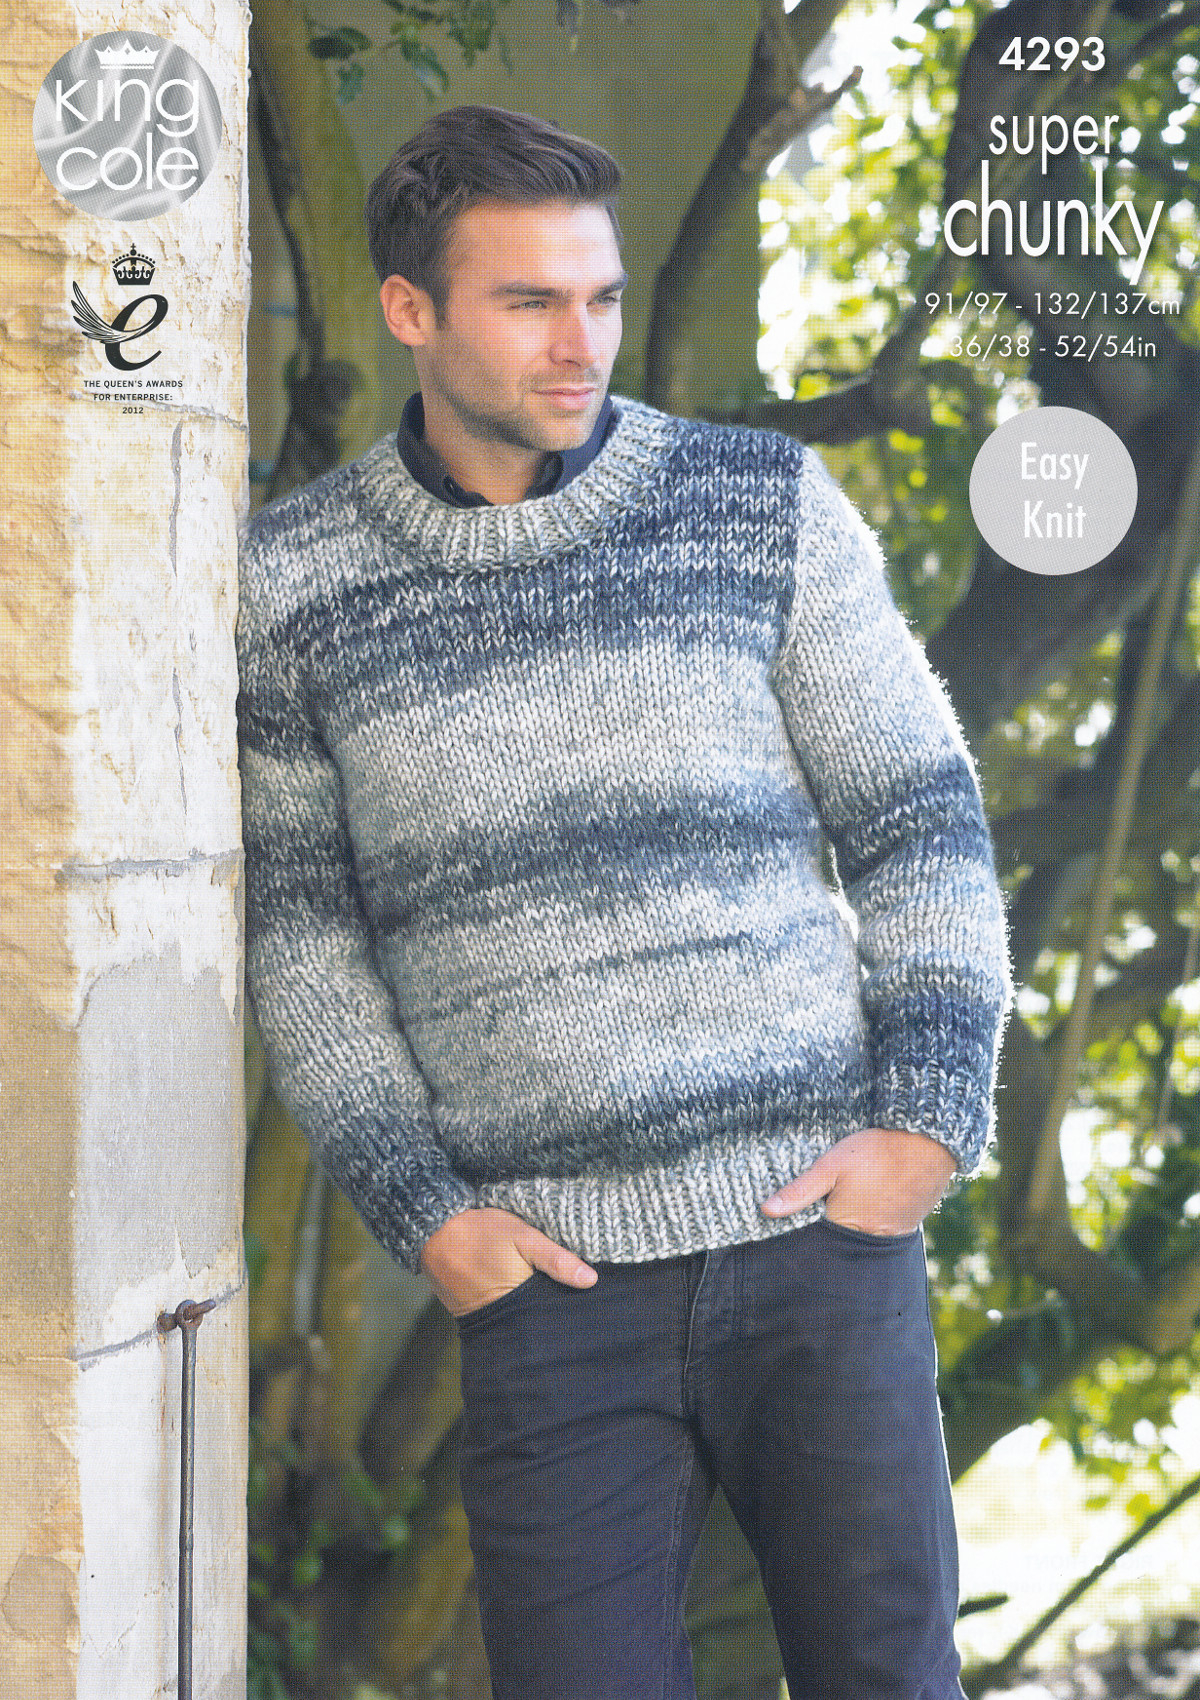 Mens Knit Patterns Details About King Cole Mens Super Chunky Knitting Pattern Easy Knit Jumper Waistcoat 4293